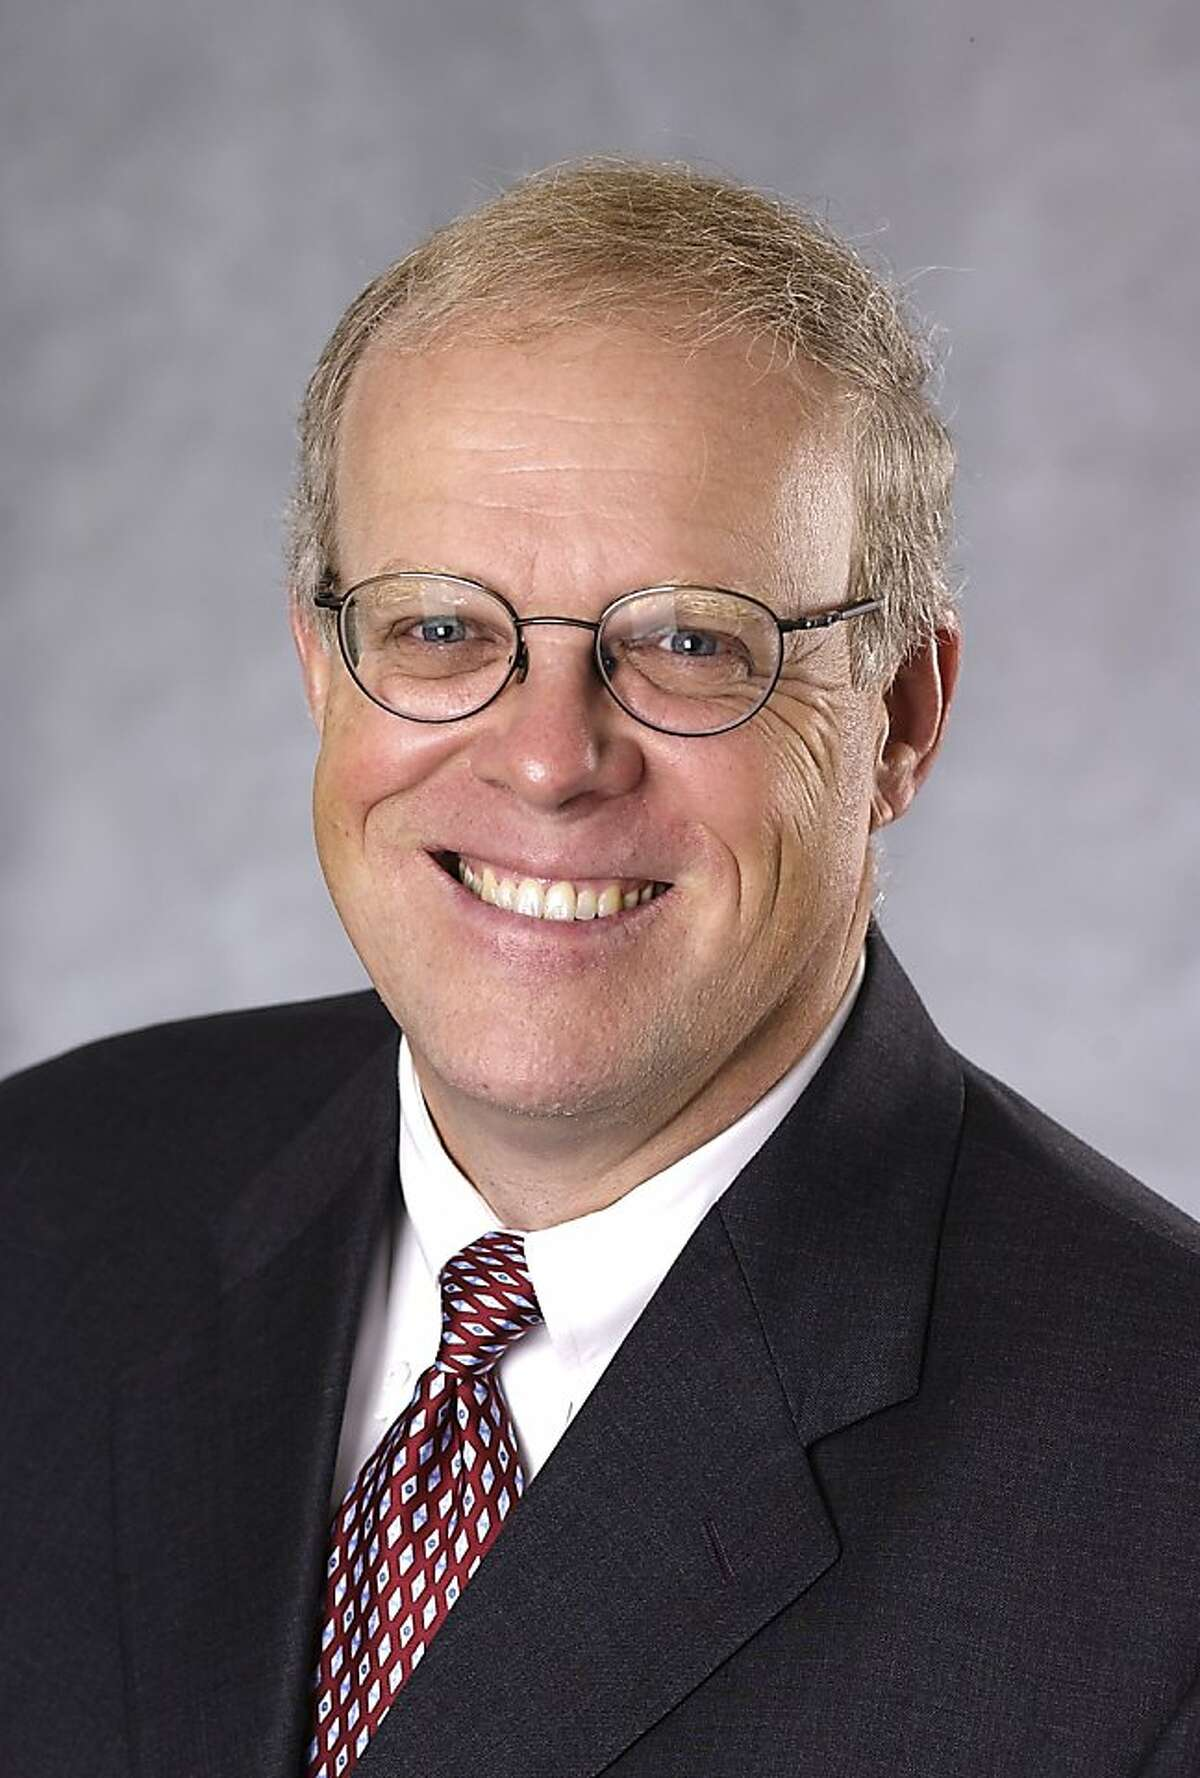 John Hennessey is the President of Stanford University